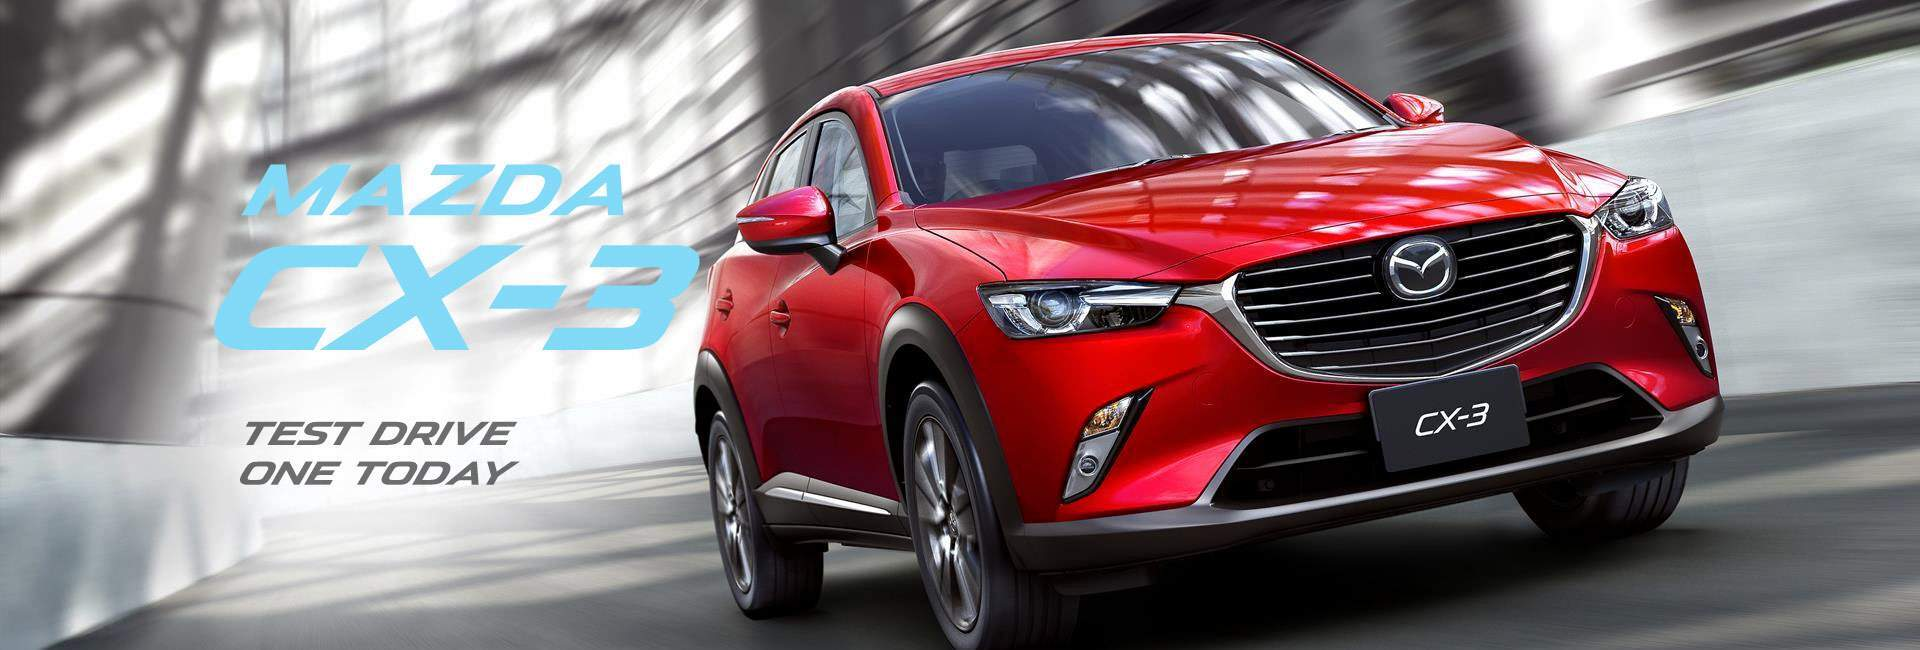 Mazda CX-3 at Mazda of Lodi